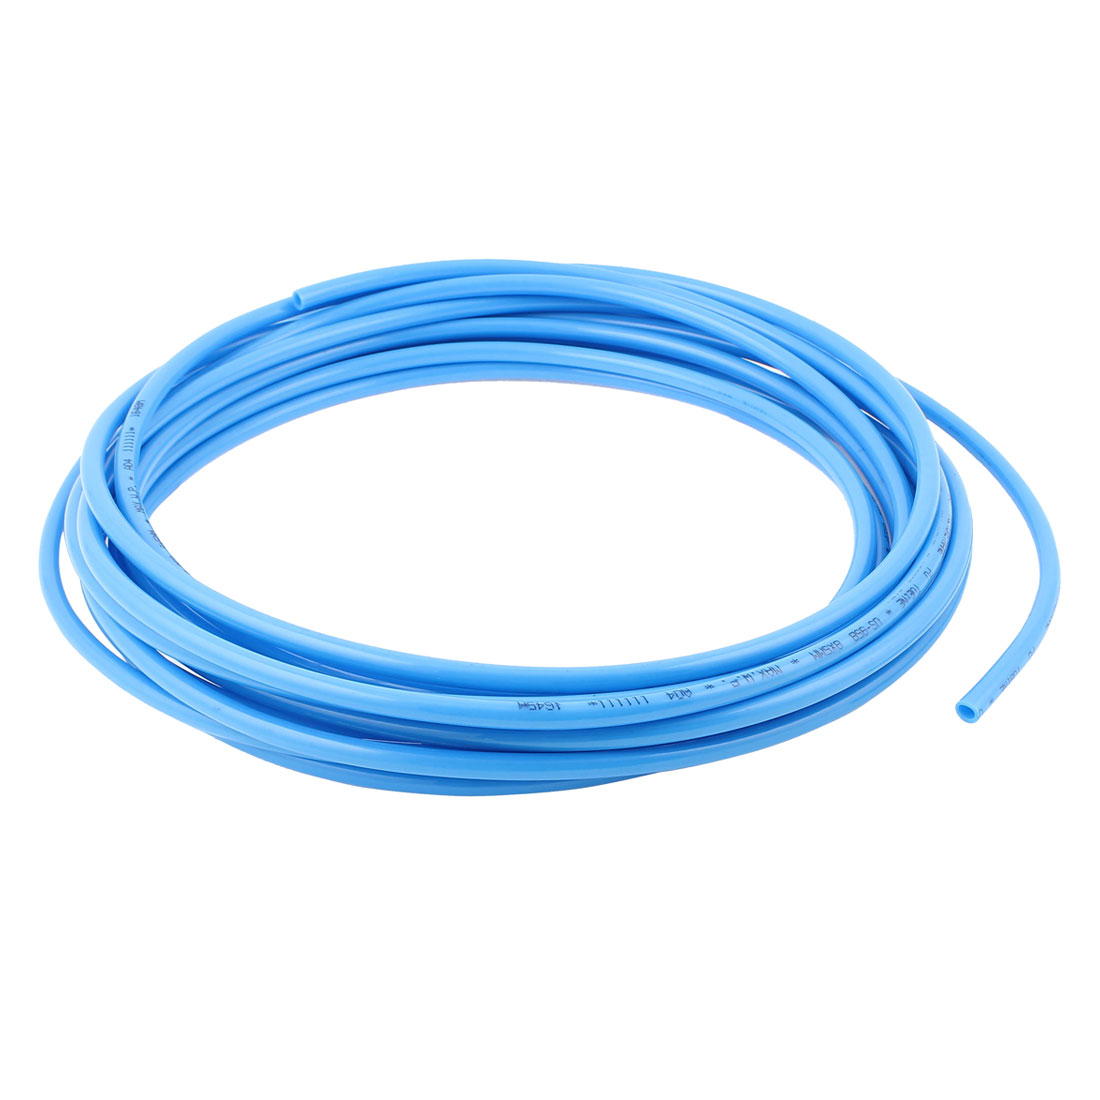 UXCELL 8Mm X 5Mm Pneumatic Air Compressor Tubing Pu Hose Tube Pipe 9.5M Blue air compressor 1 2bsp 2 way hose pipe inline manifold block splitter teal blue